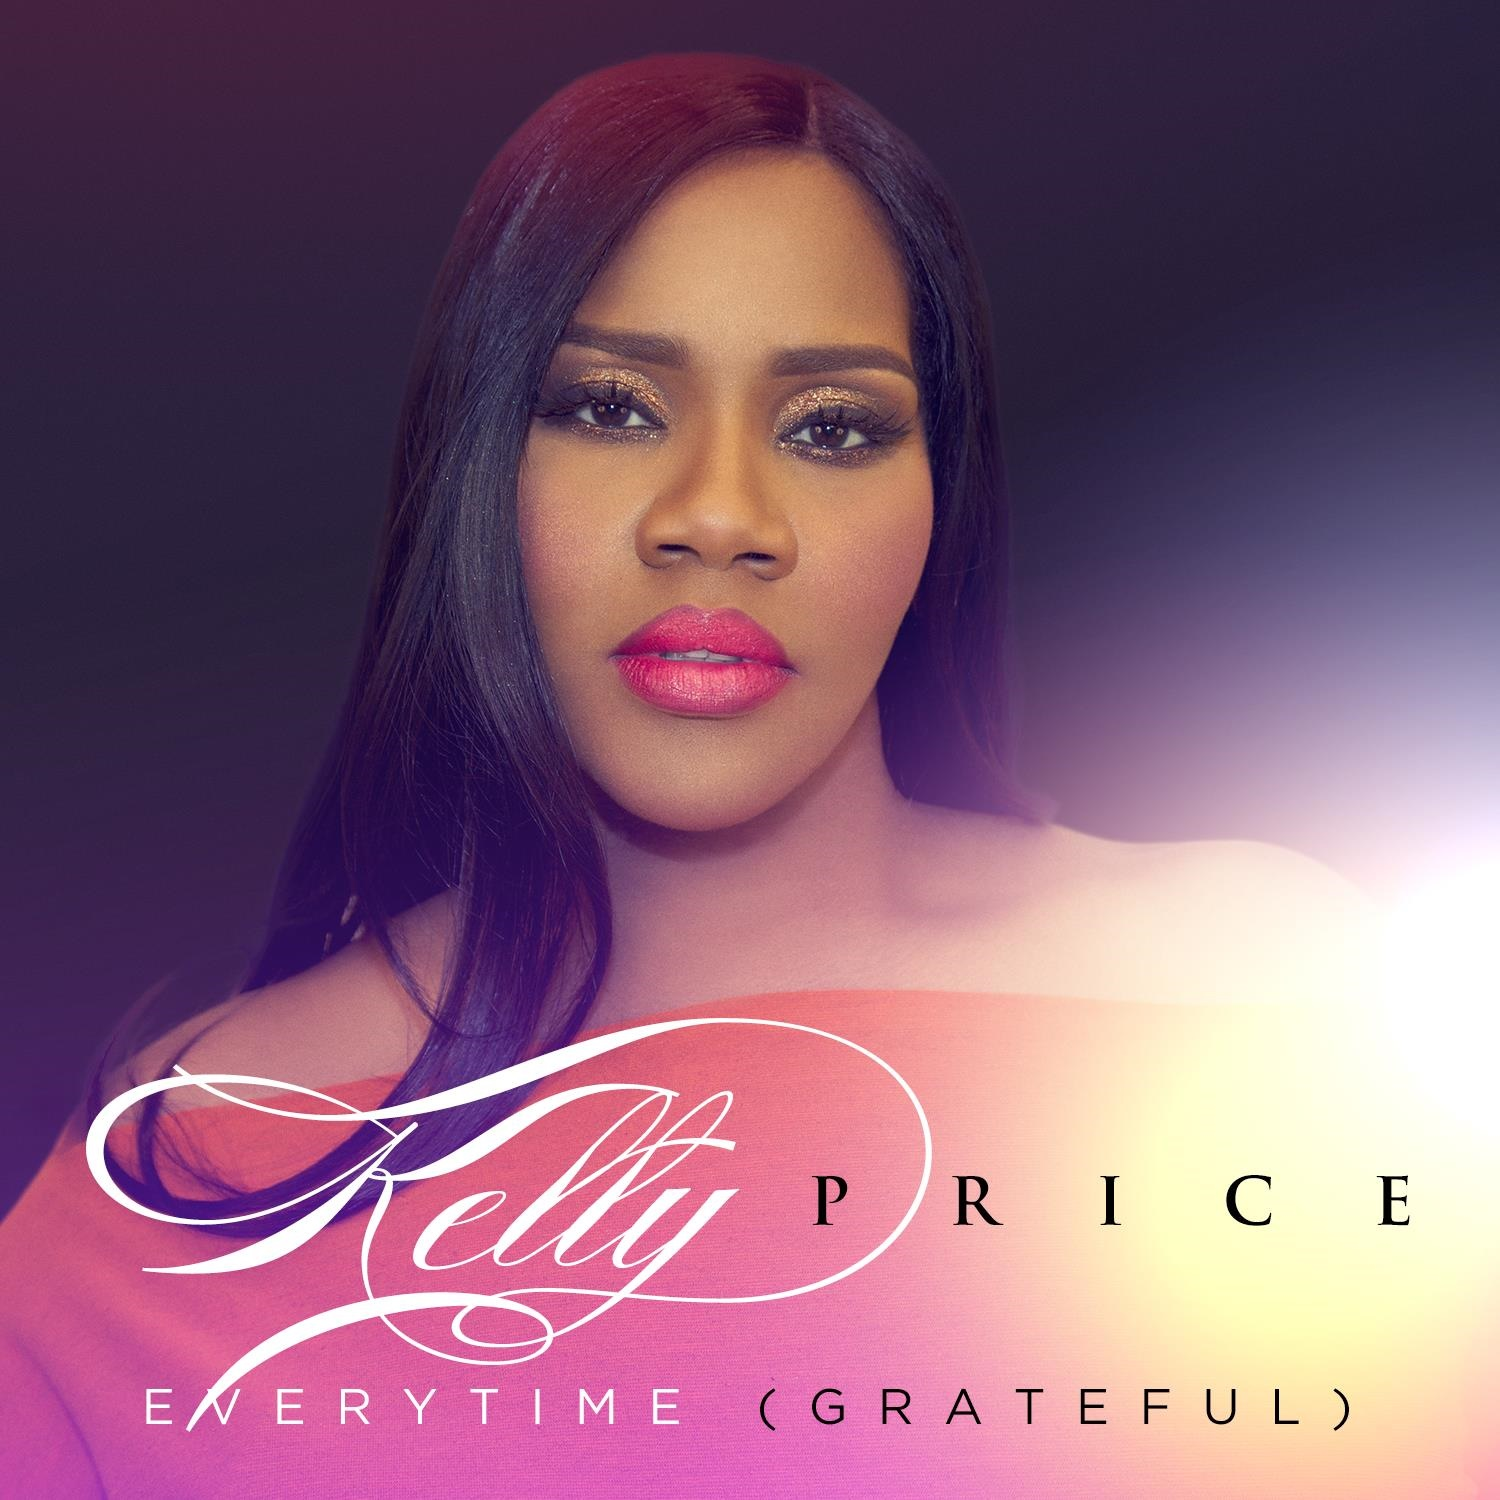 Kelly Price's New Single